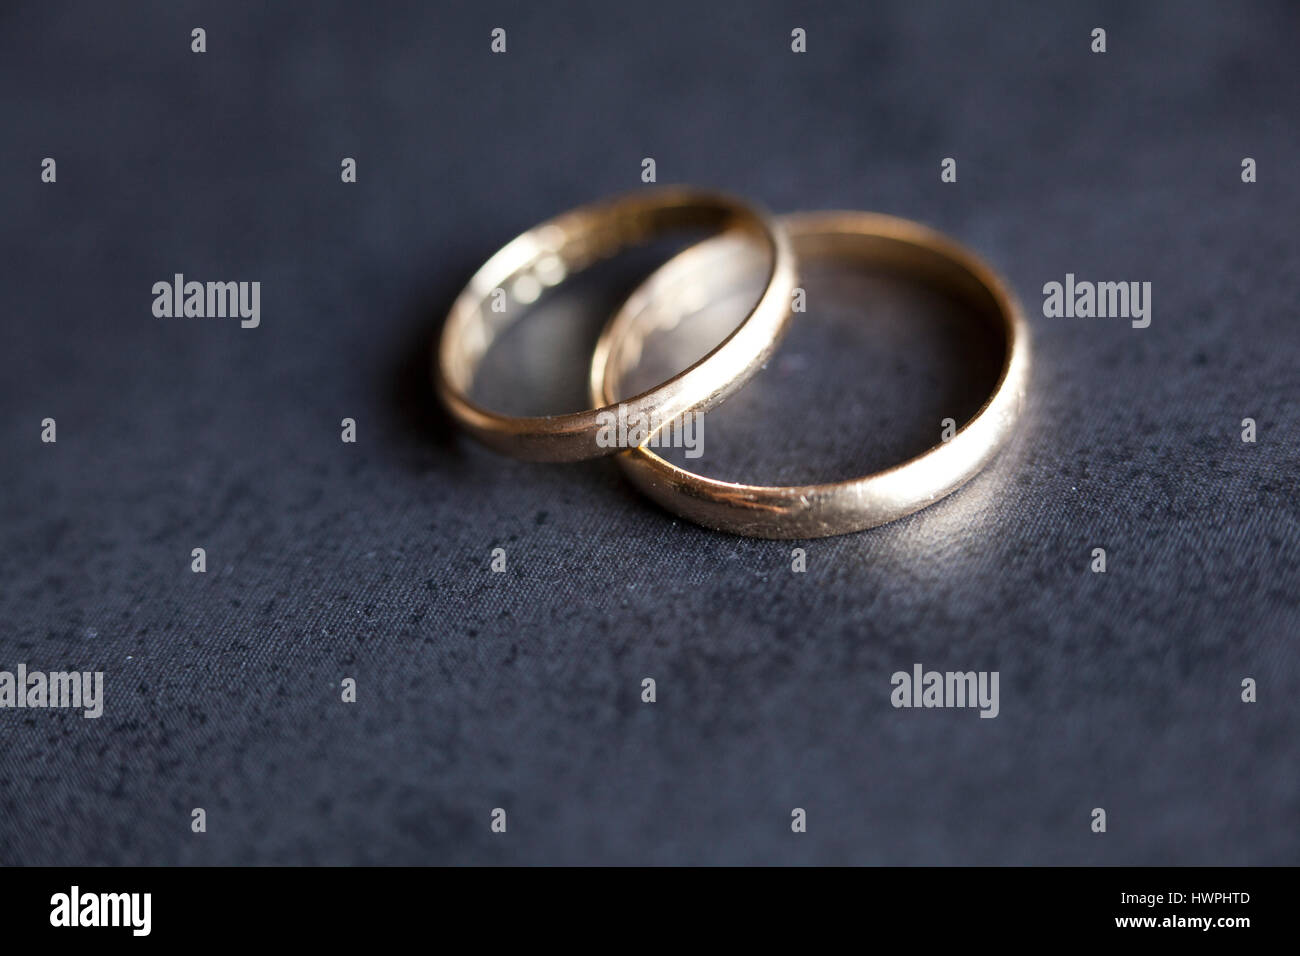 Gold Wedding Rings On Dark Background